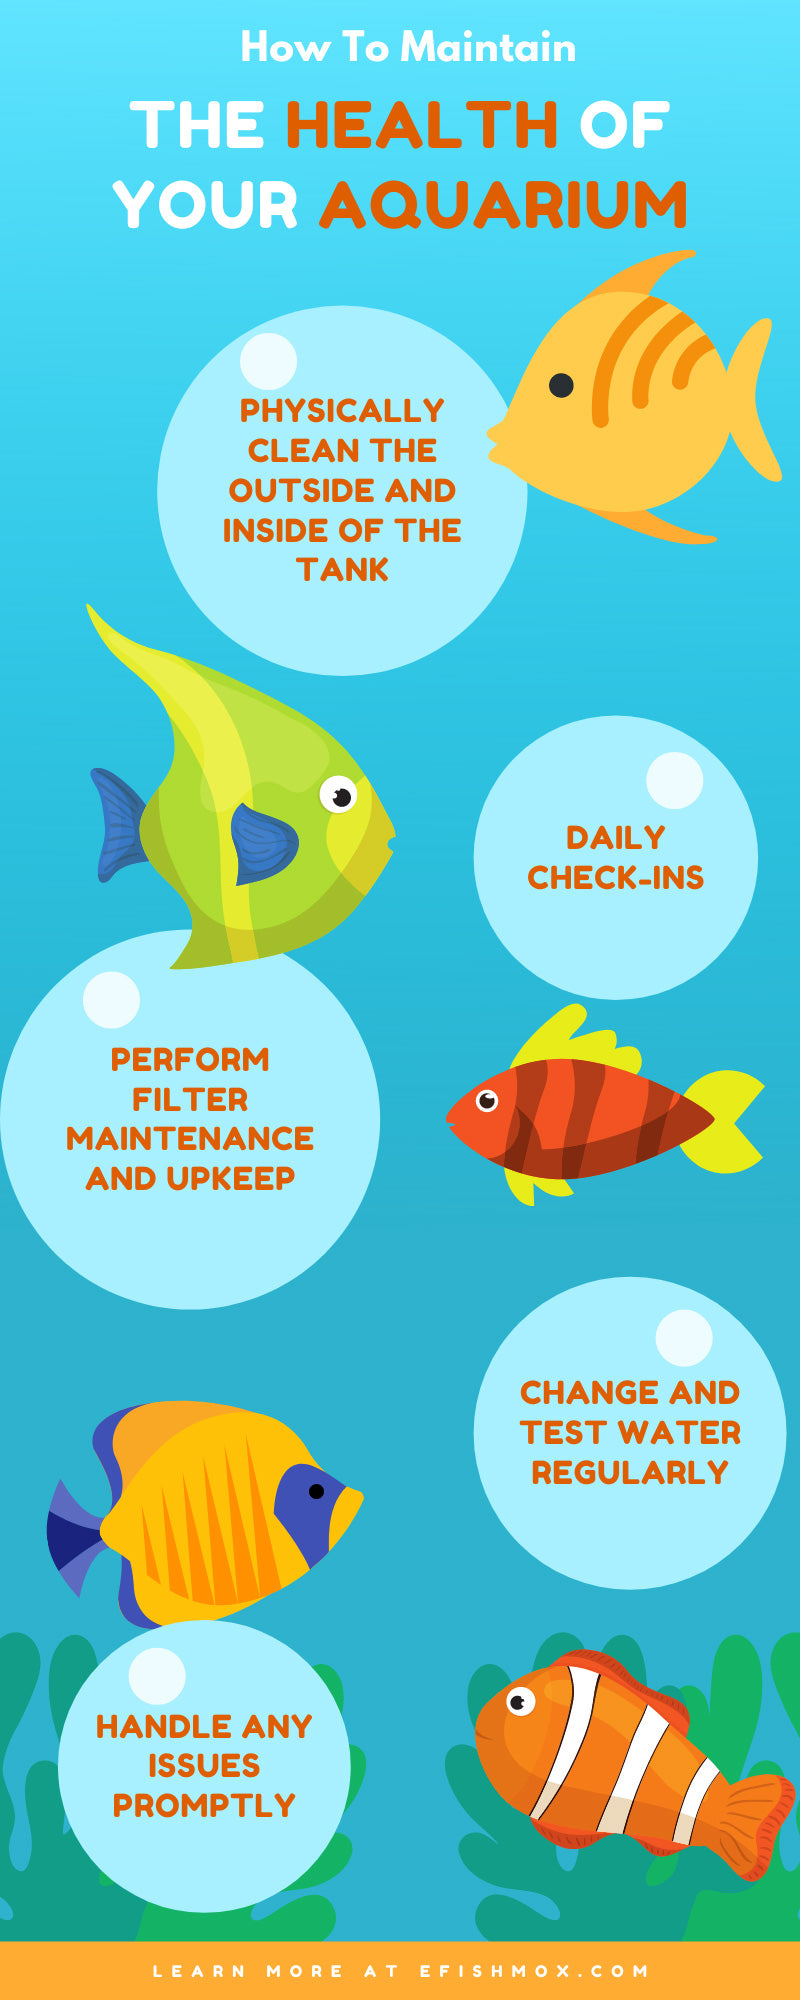 How To Maintain the Health of Your Aquarium